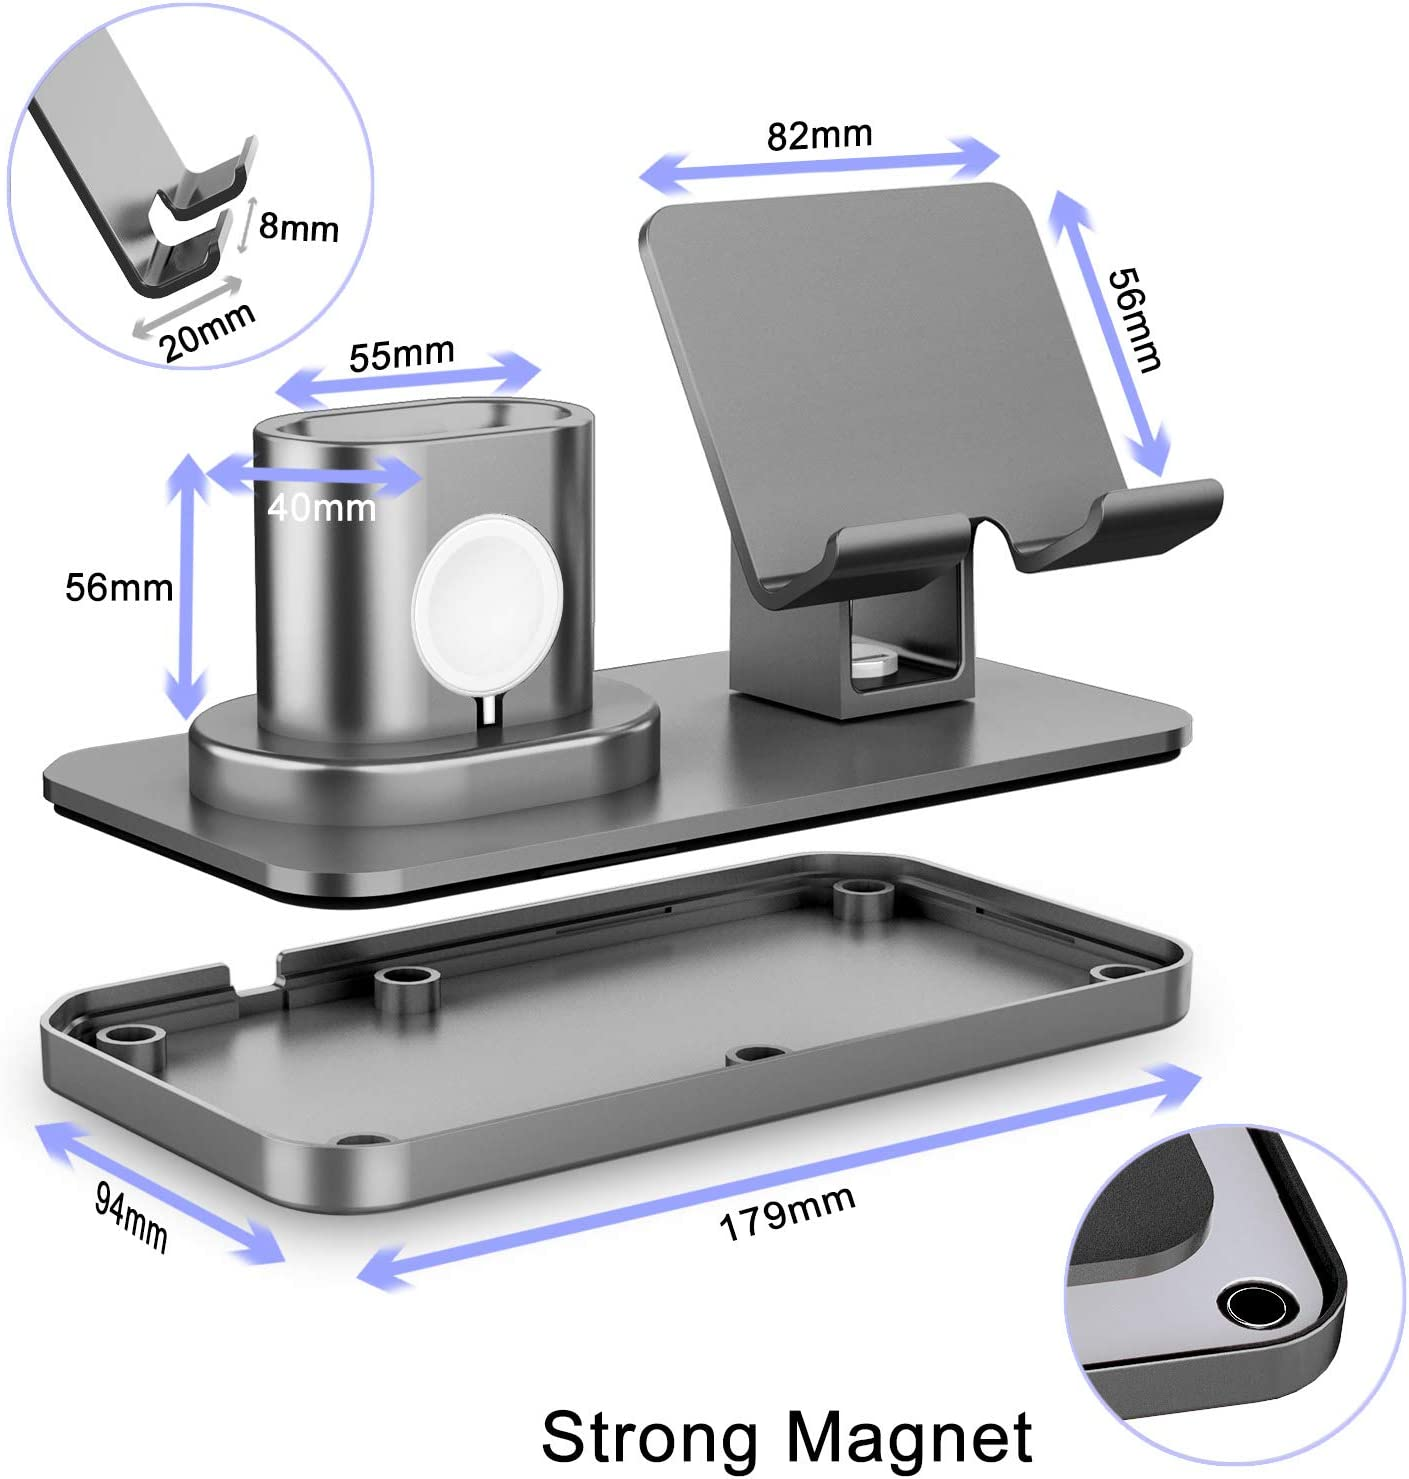 Charging Stand for iPhone//Apple Watch//Airpods//ipad and Most Smartphones 180/°Rotation Phone Charger Stand Holder,3in1 Charger Dock Rose Gold